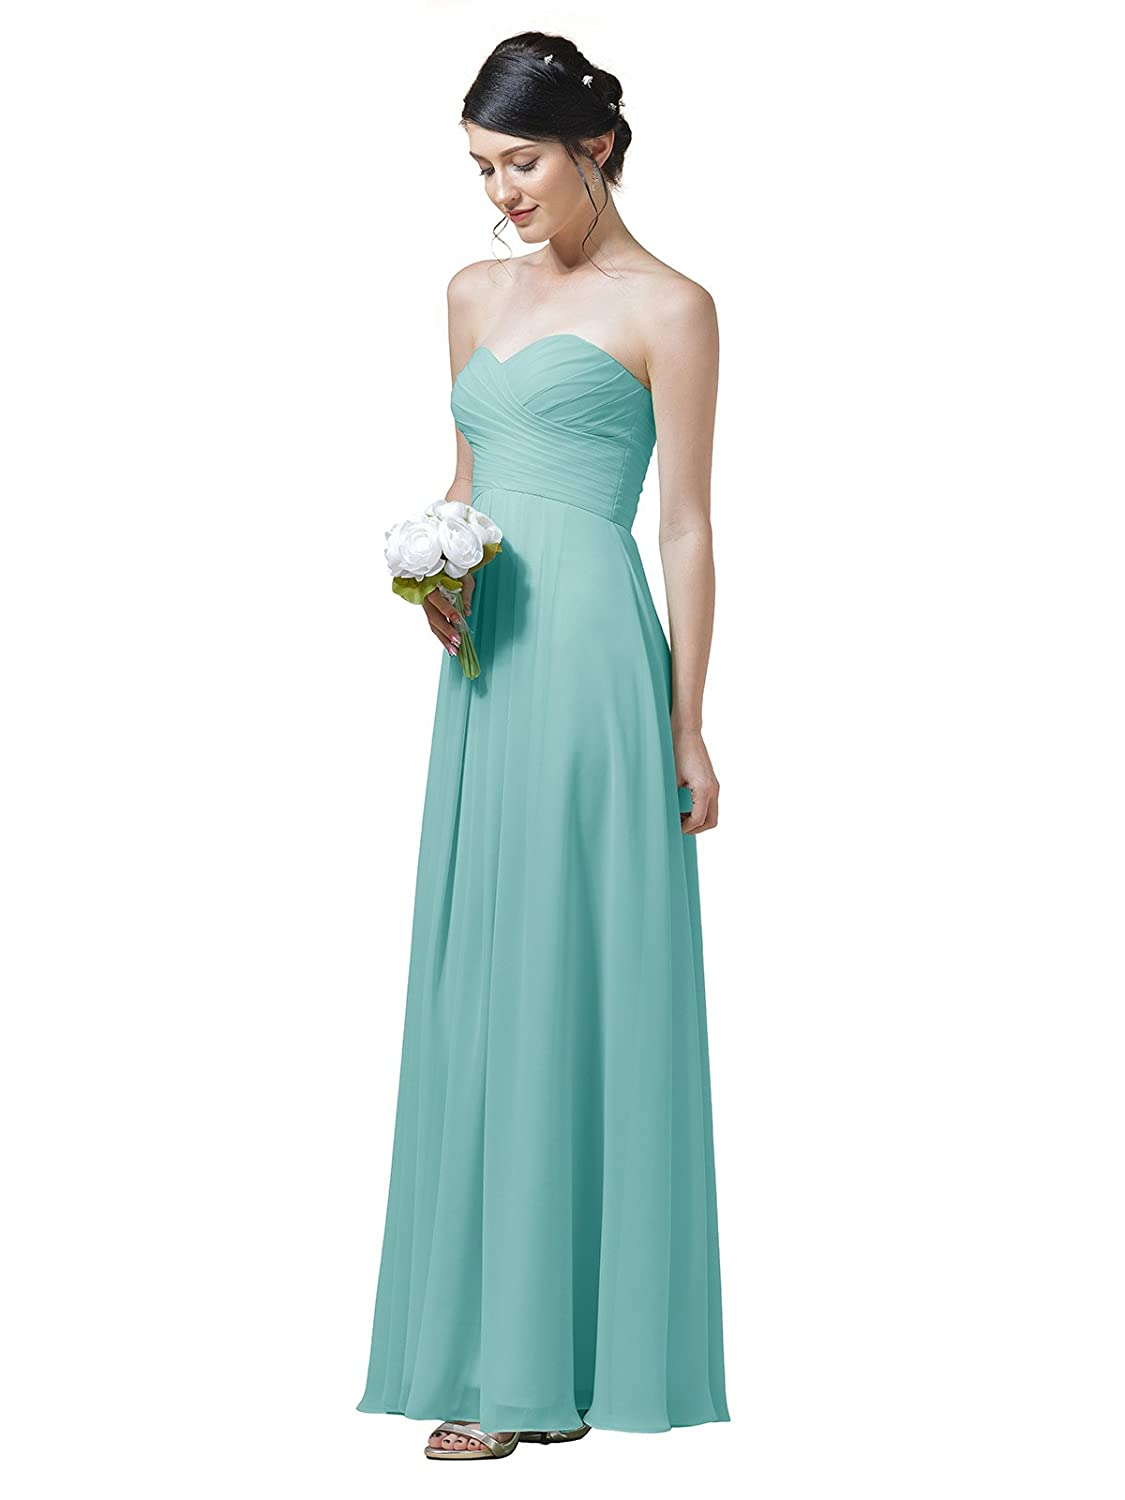 Awei bridal long bridesmaid dresses for women ruched chiffon awei bridal long bridesmaid dresses for women ruched chiffon evening prom dress outlet ombrellifo Gallery